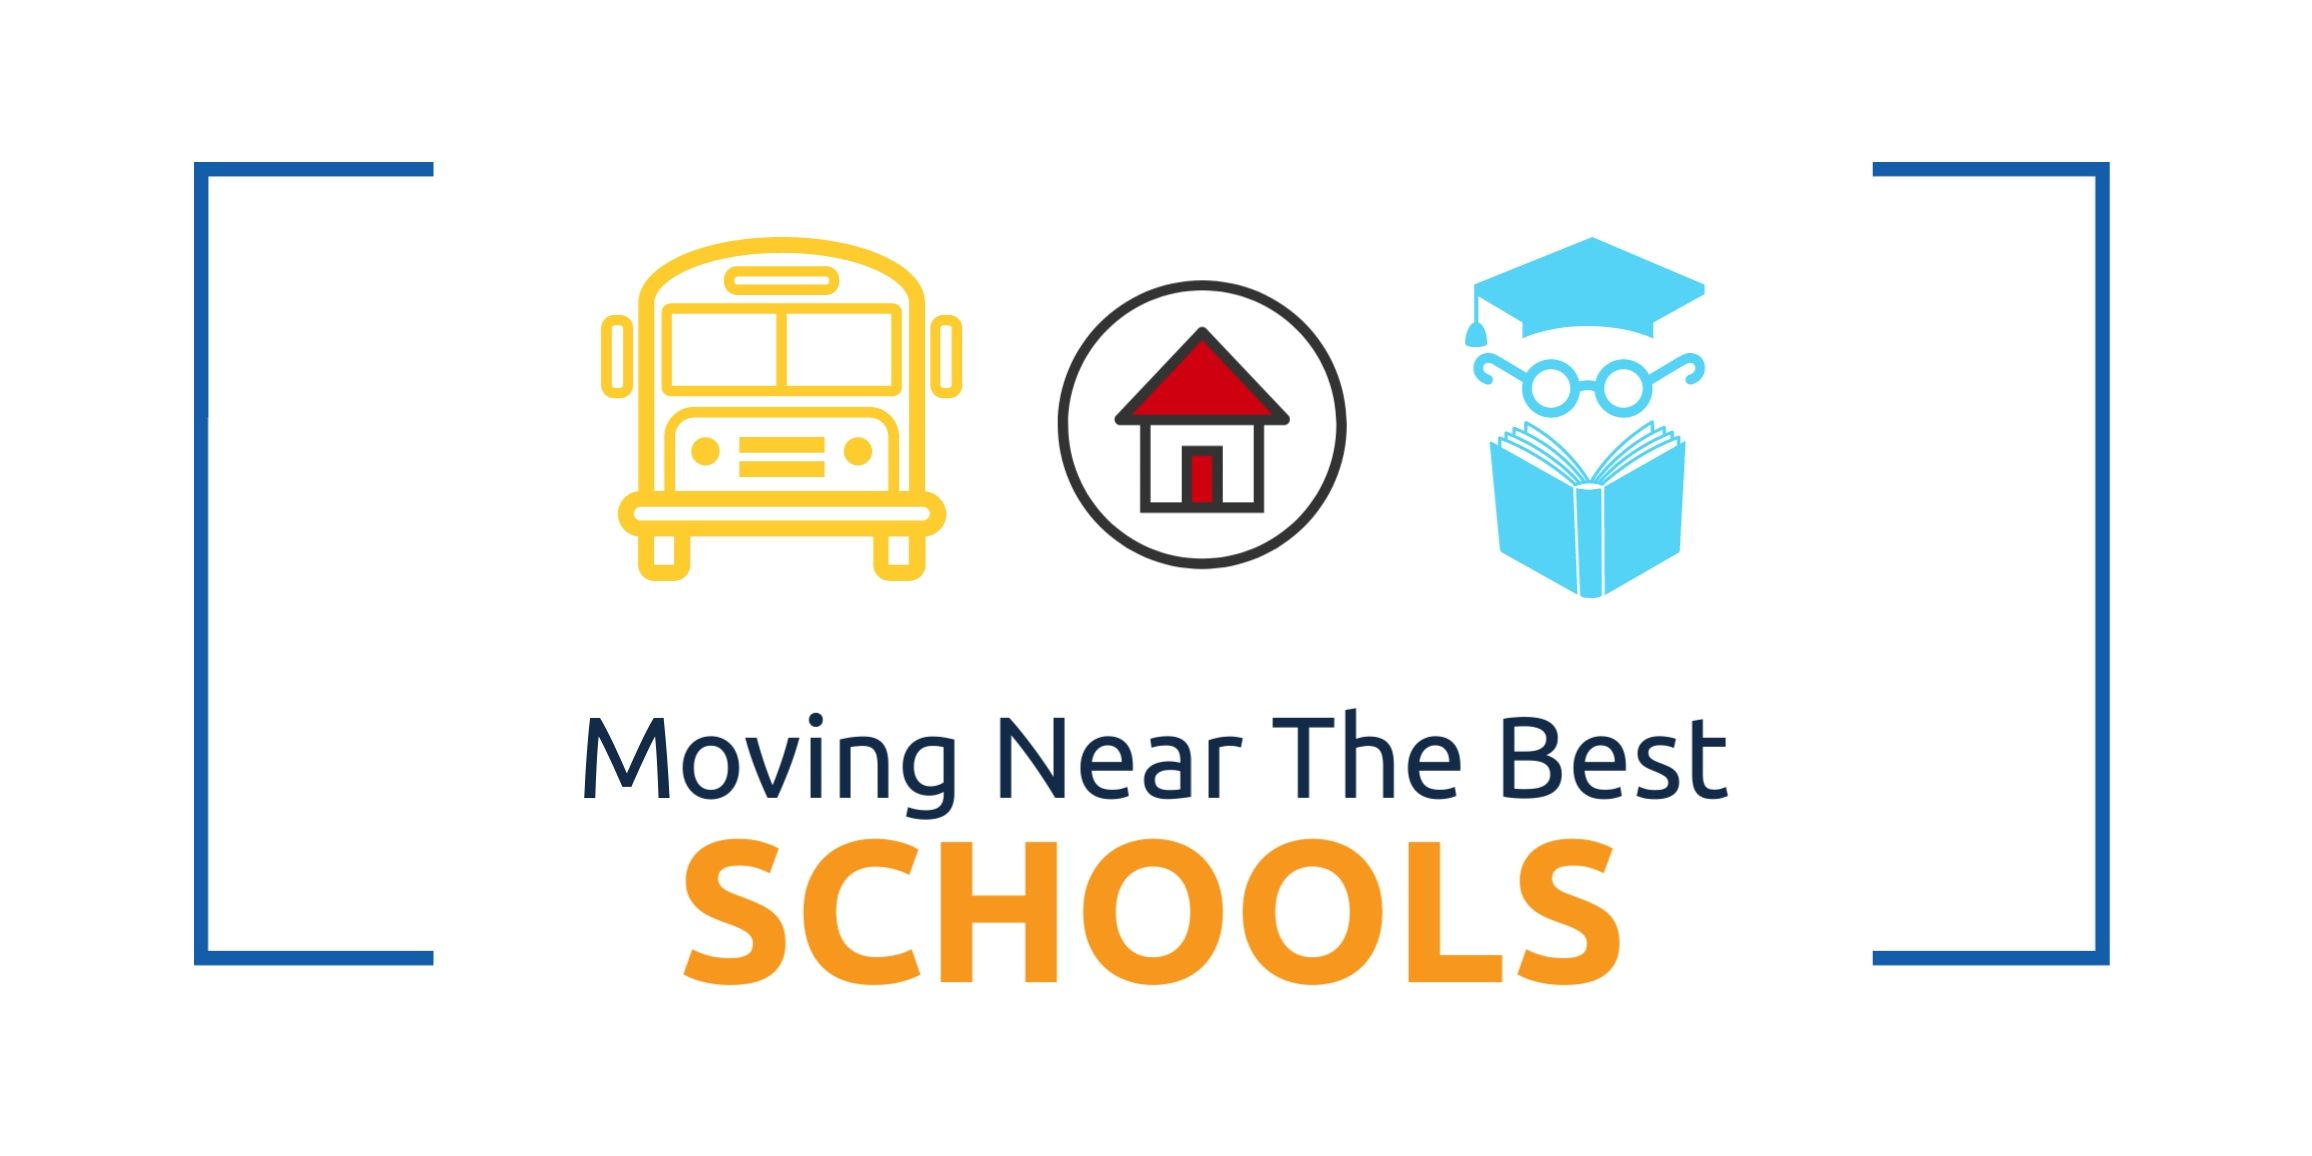 Buying For The Right Schools